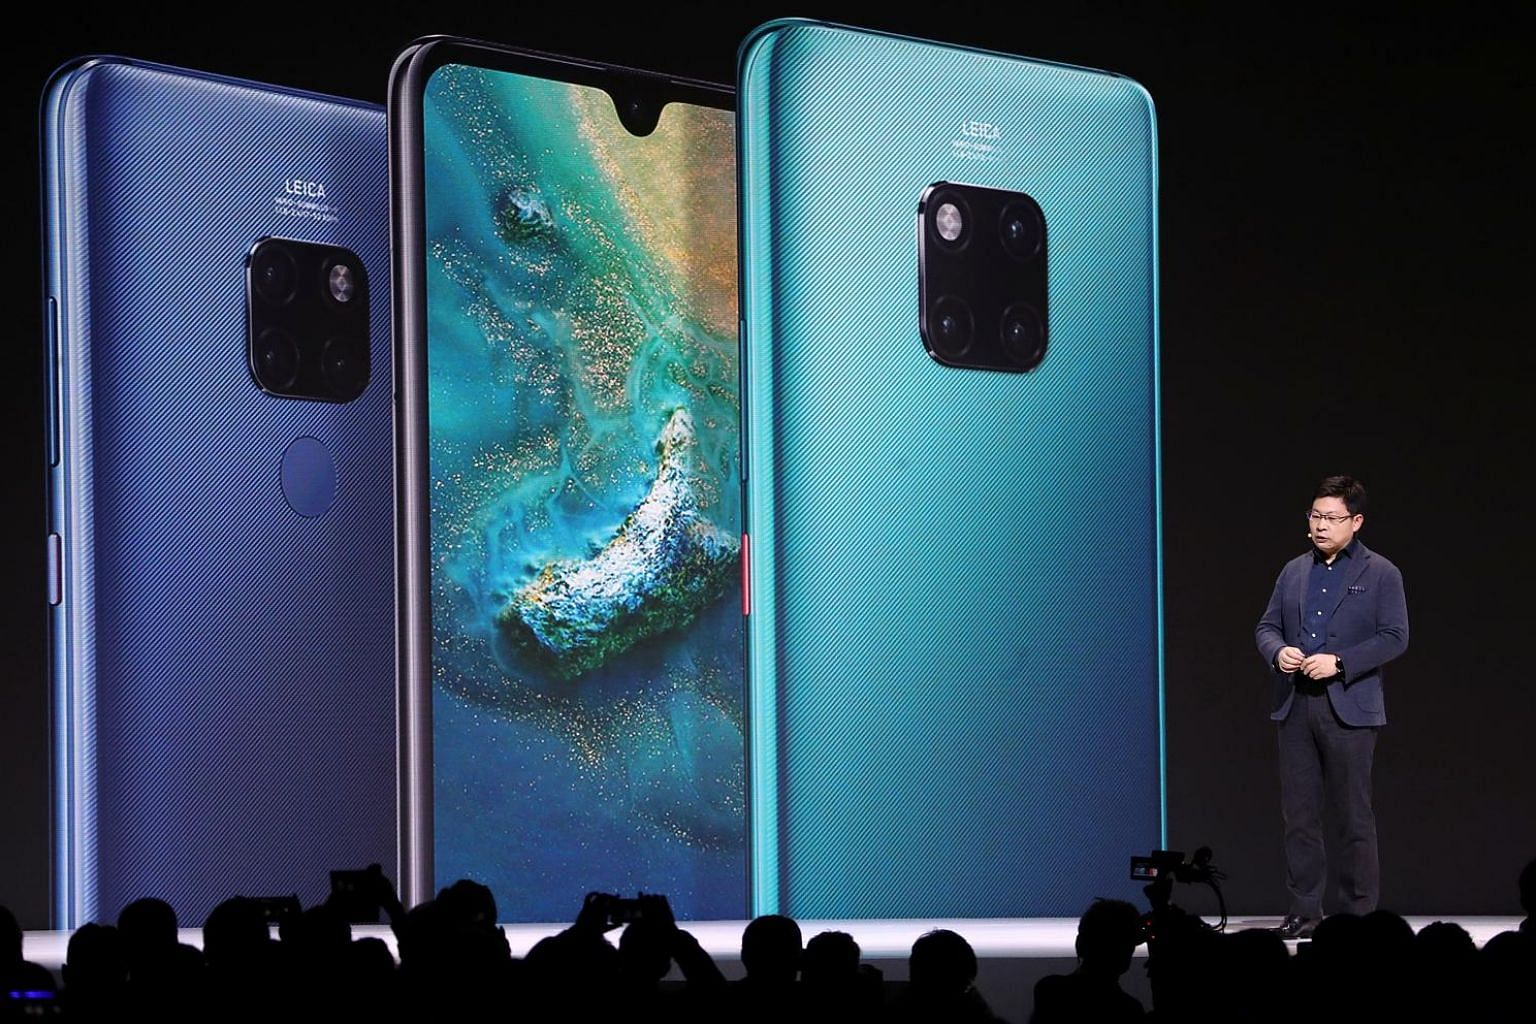 Huawei consumer business group chief executive Richard Yu presenting the Mate 30 models, among other new products, in Munich yesterday. He did not address the issue of Google compatibility, opting instead to focus on the phone's hardware features. PH